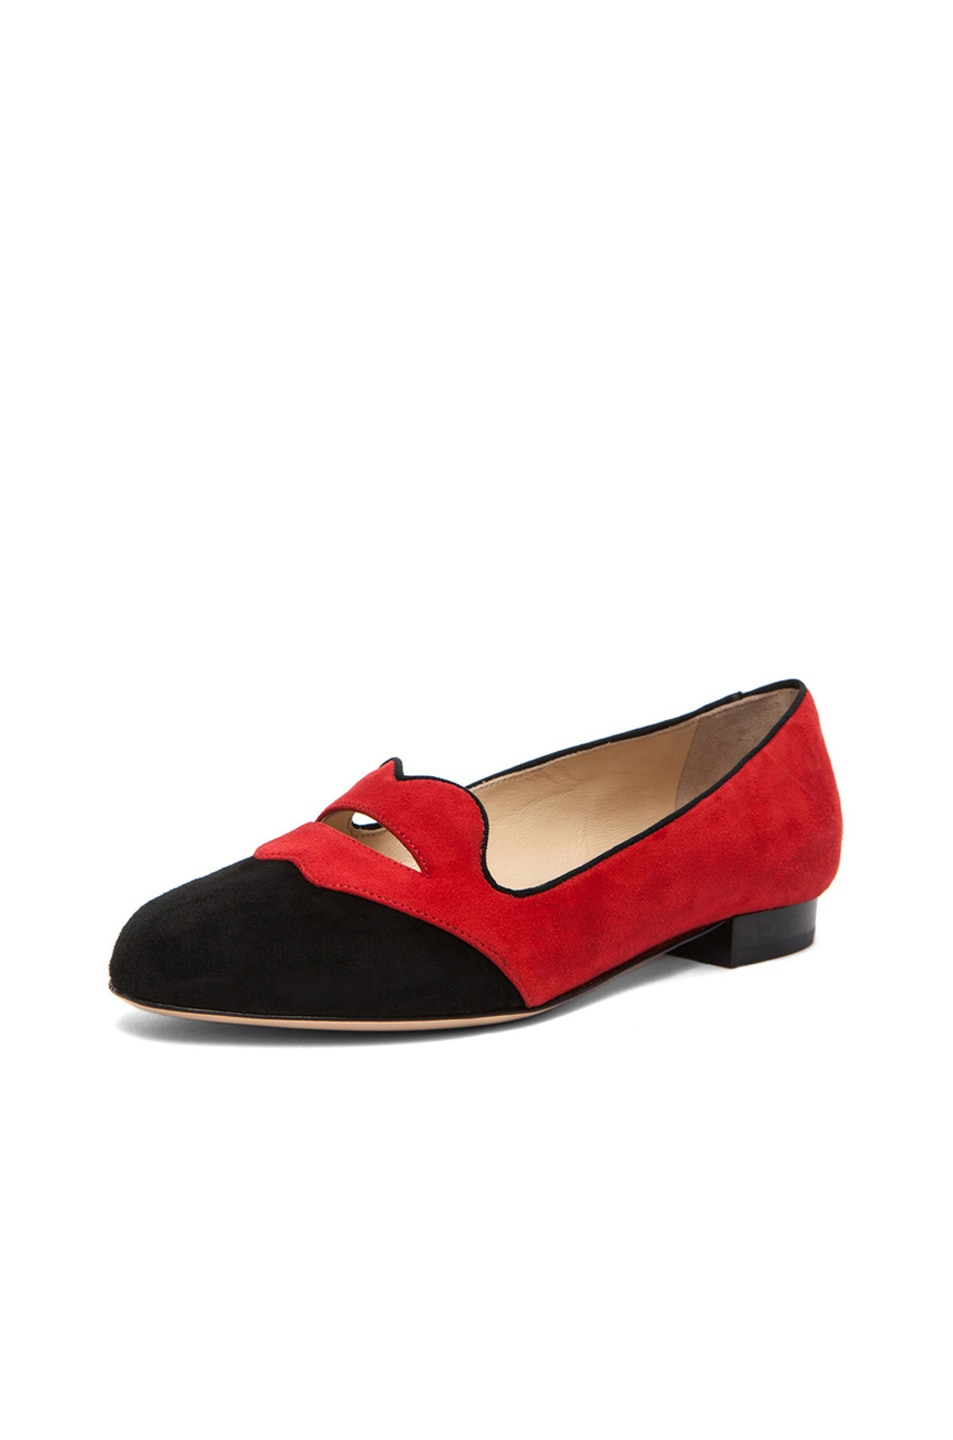 Image 3 of Charlotte Olympia Bisoux Suede Flats in Red & Black